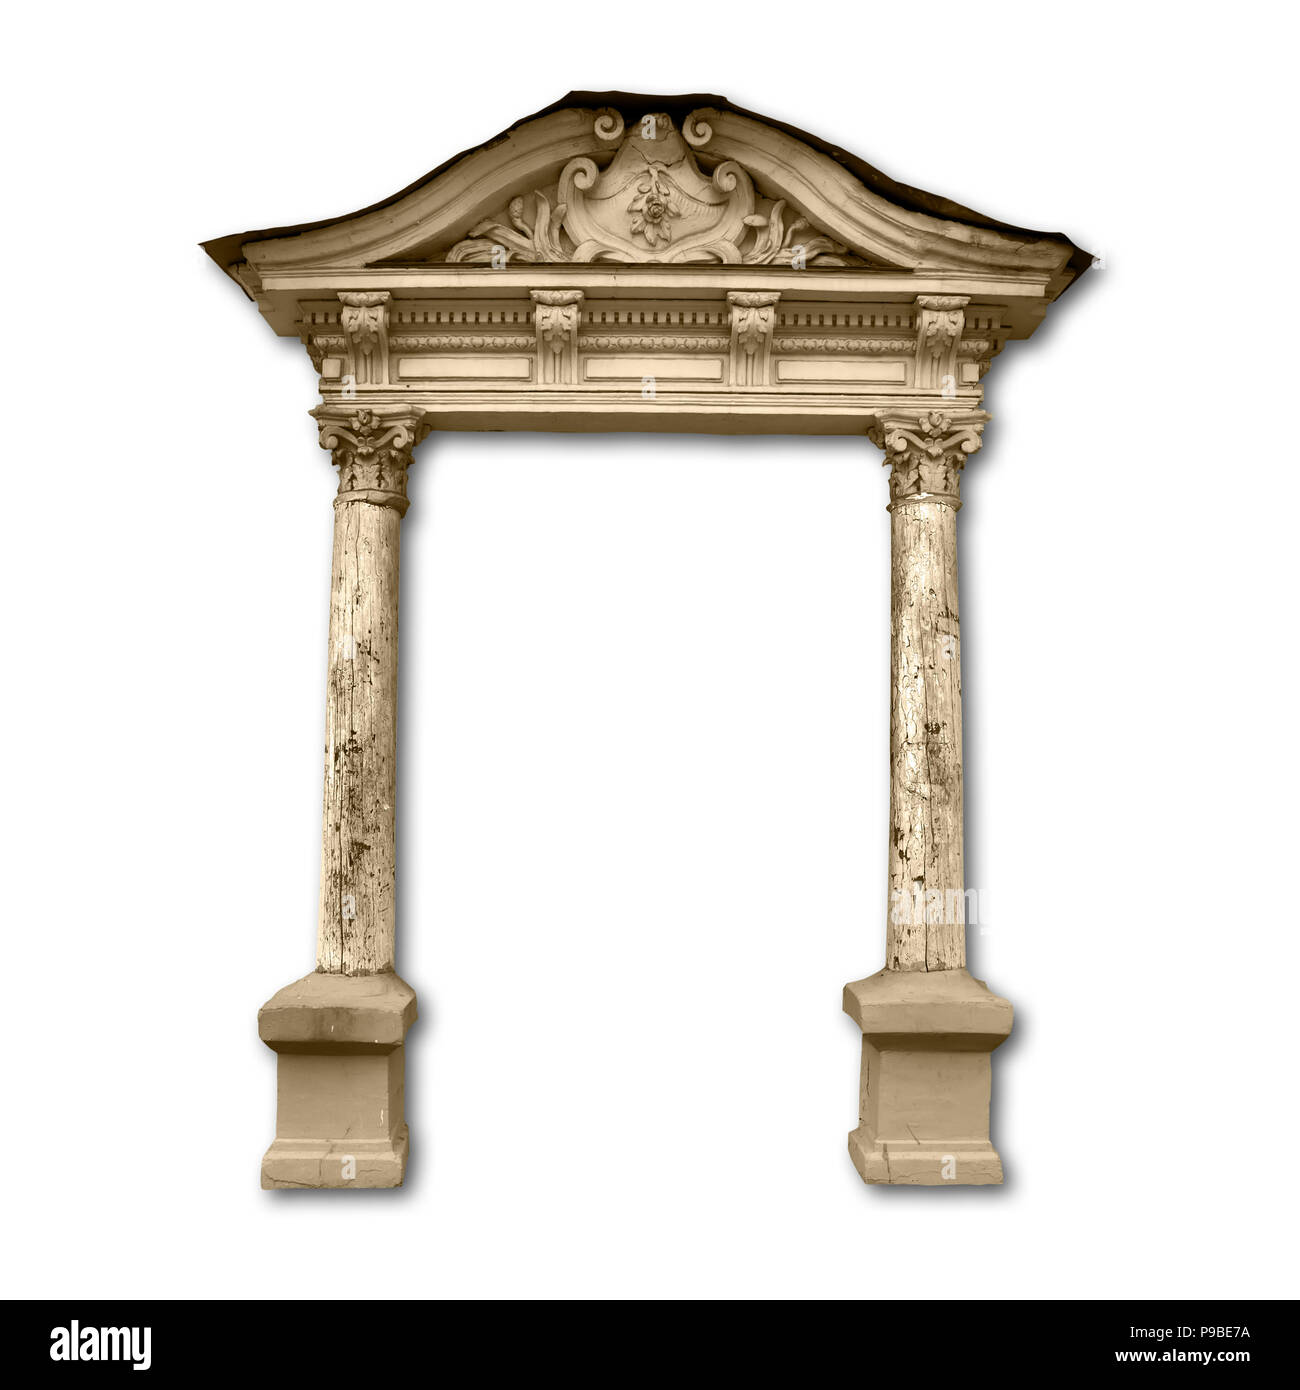 Portico entrance with wooden columns with drop shadow isolated on white background - Stock Image